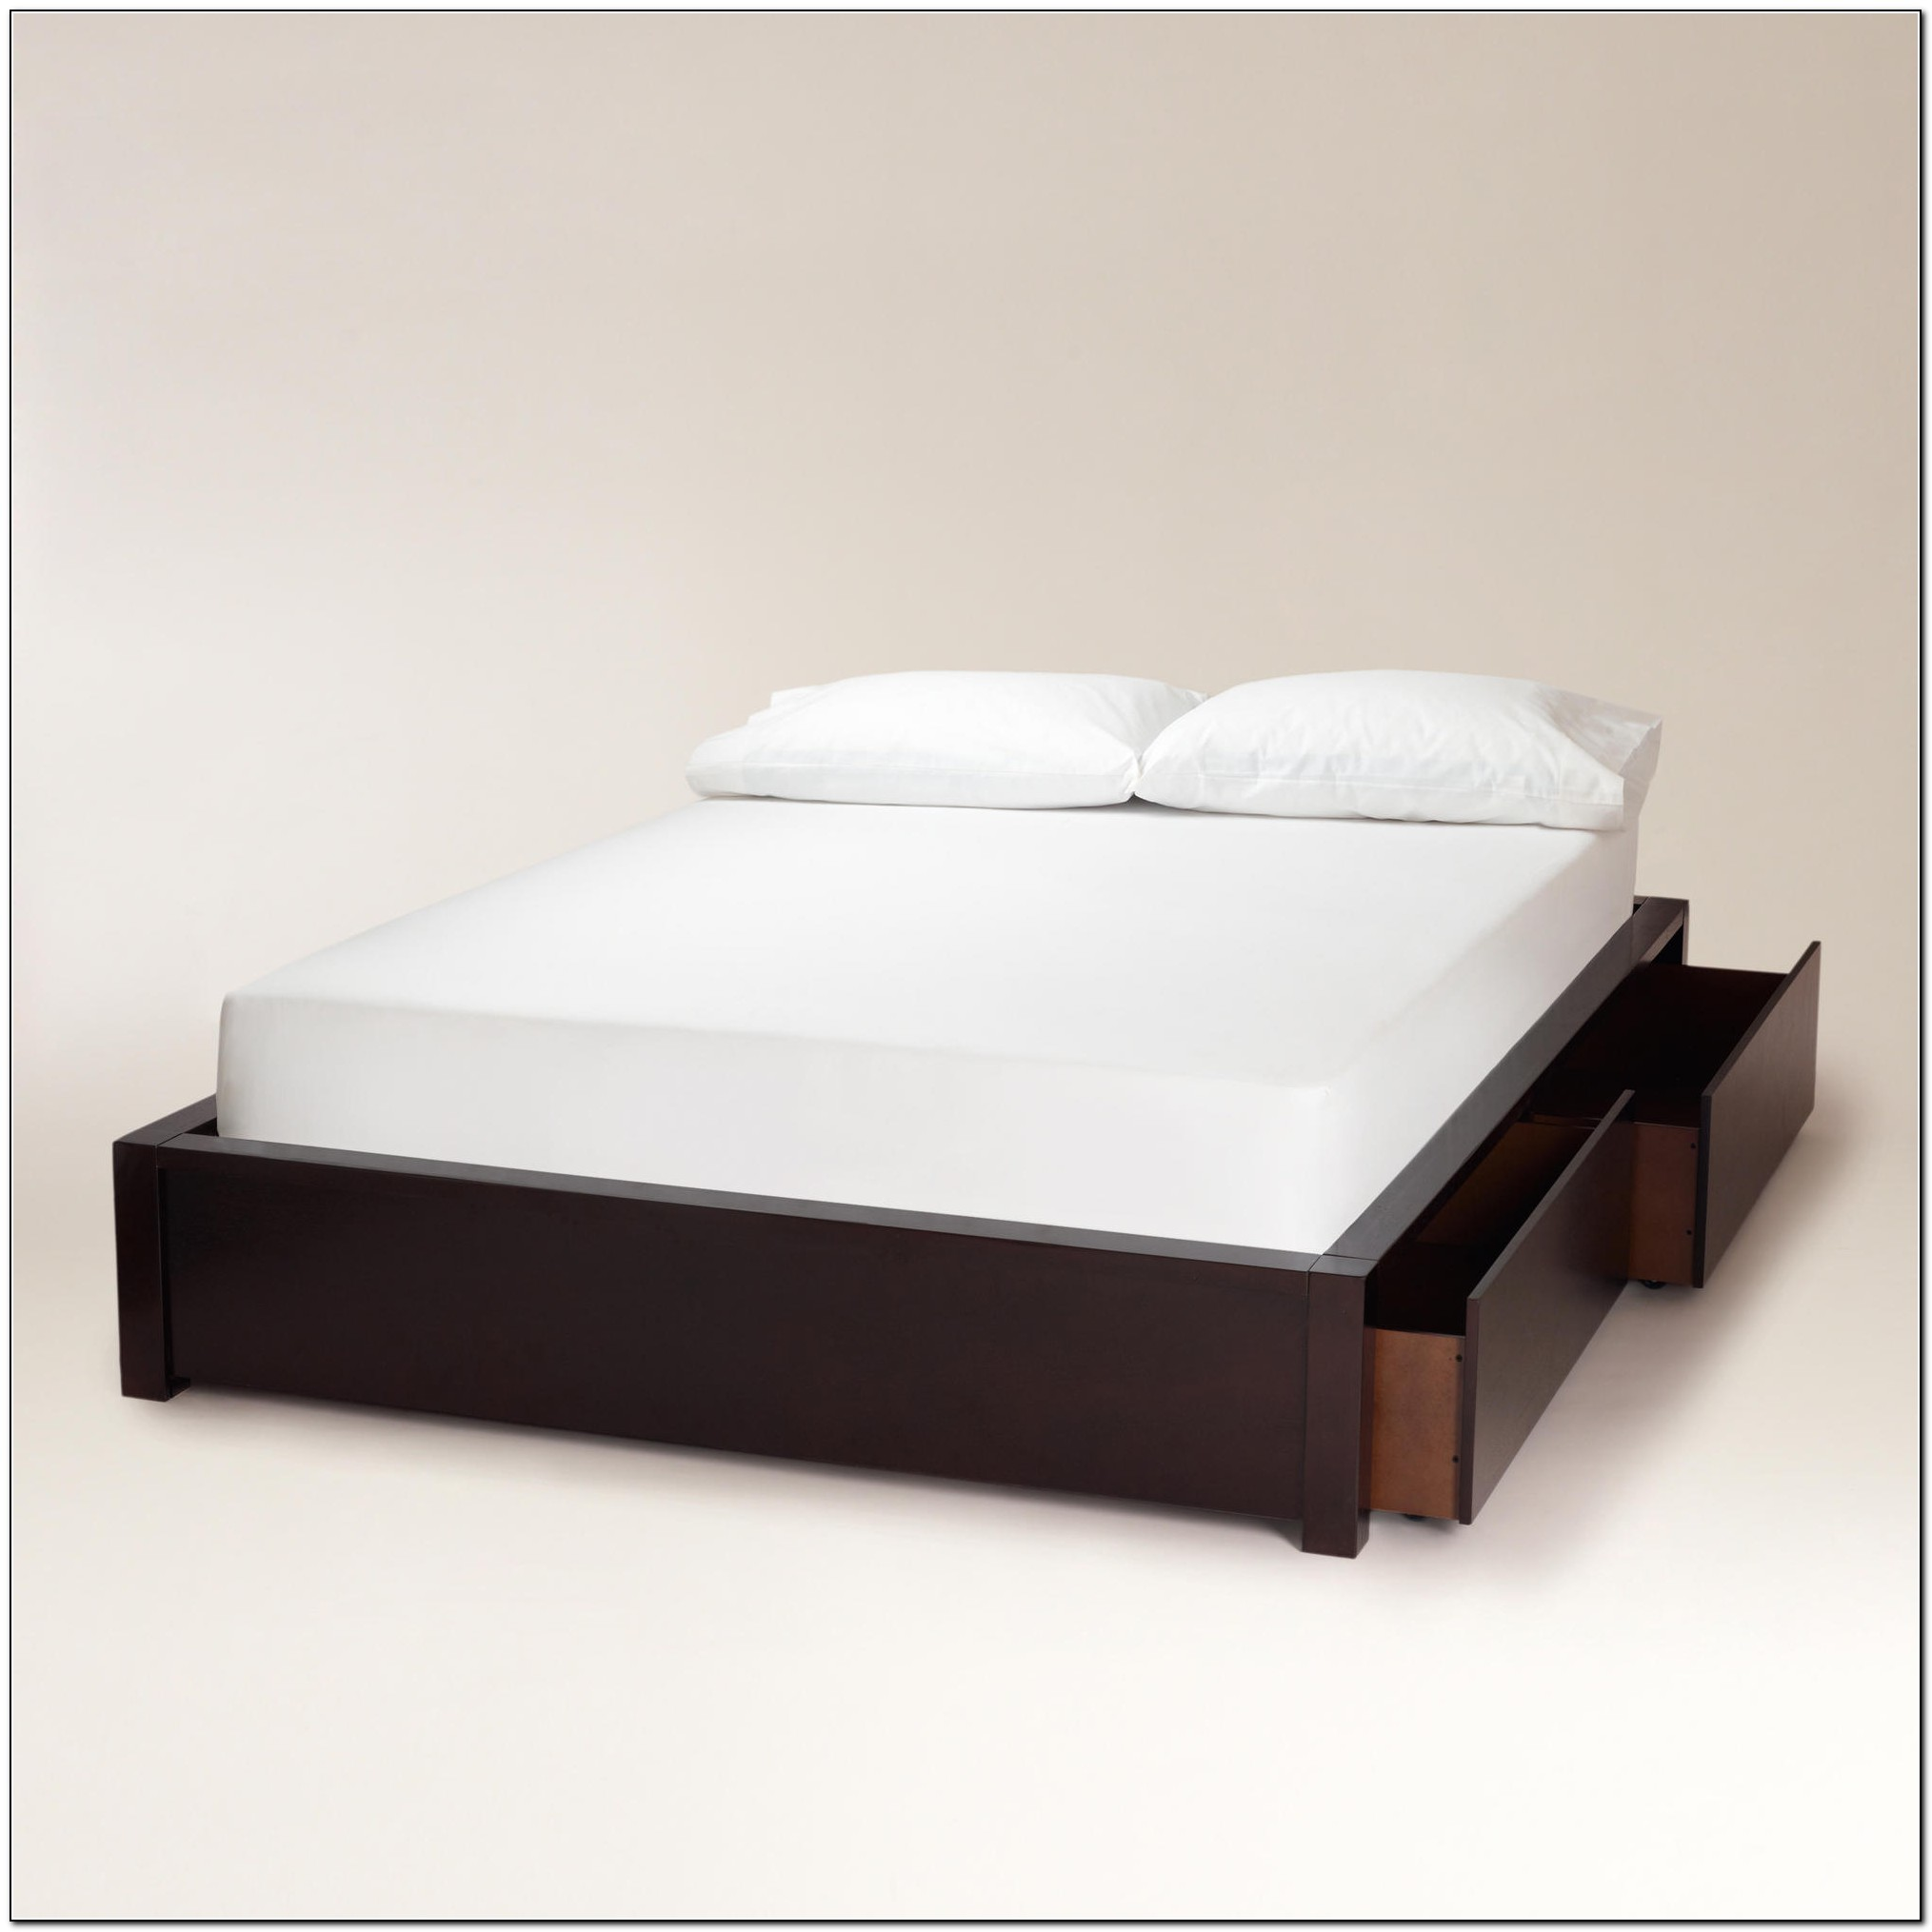 Platform Bed With Drawers Full Size Beds Home Design